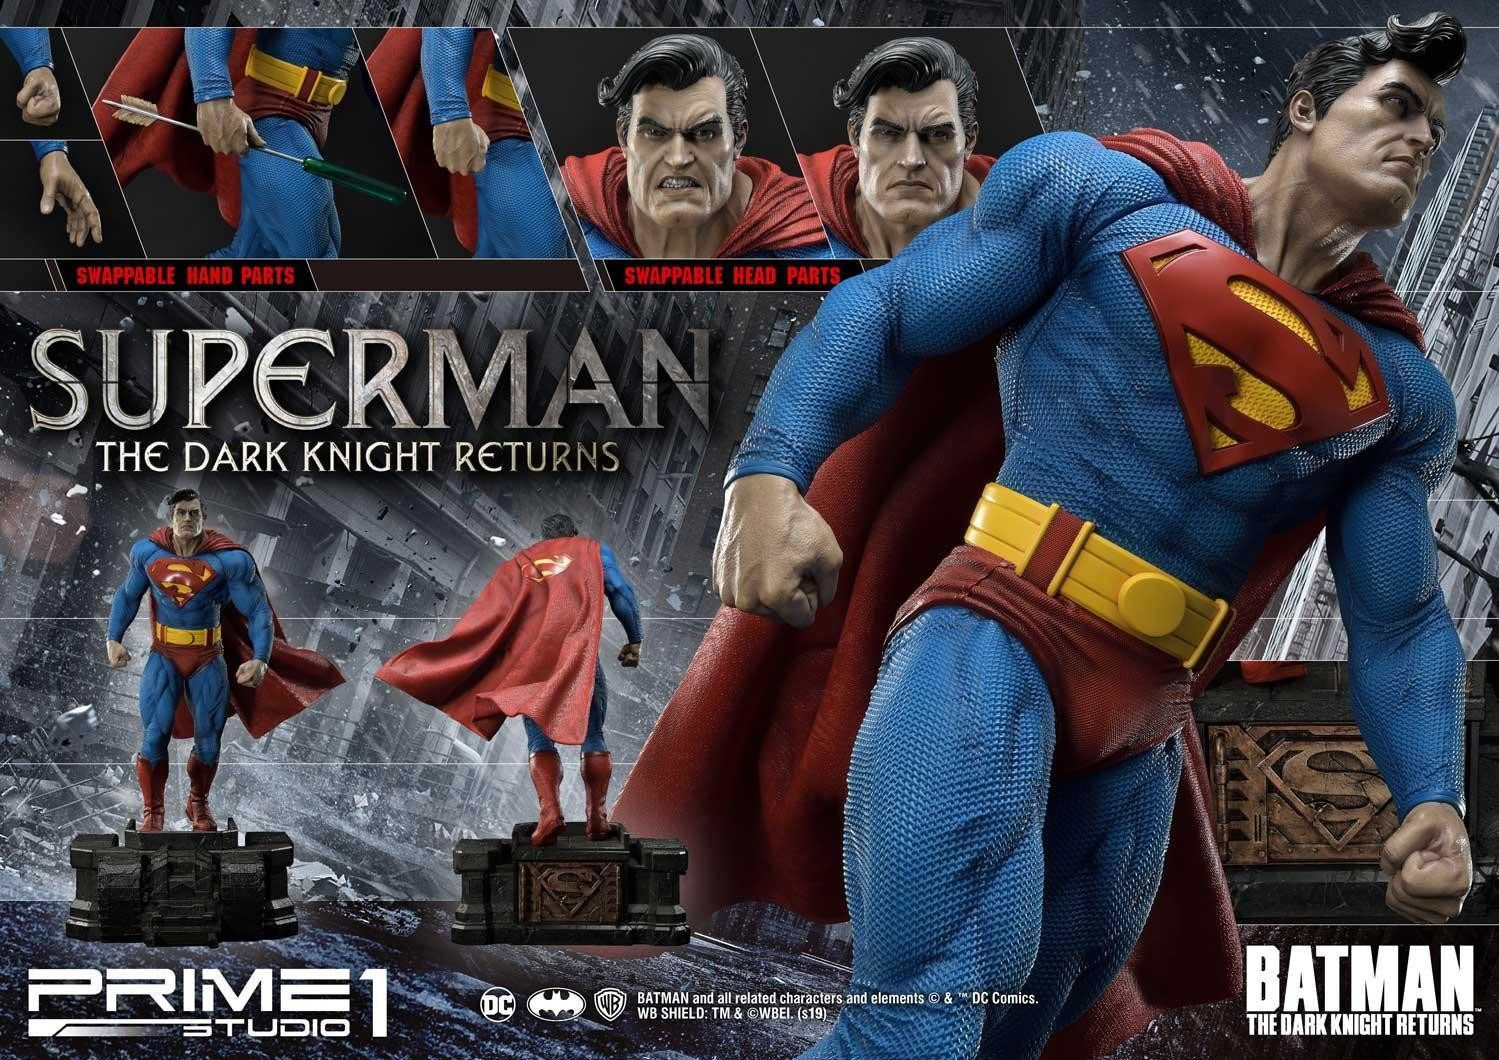 Prime 1 Studio Announces Dark Knight Returns Superman Statue